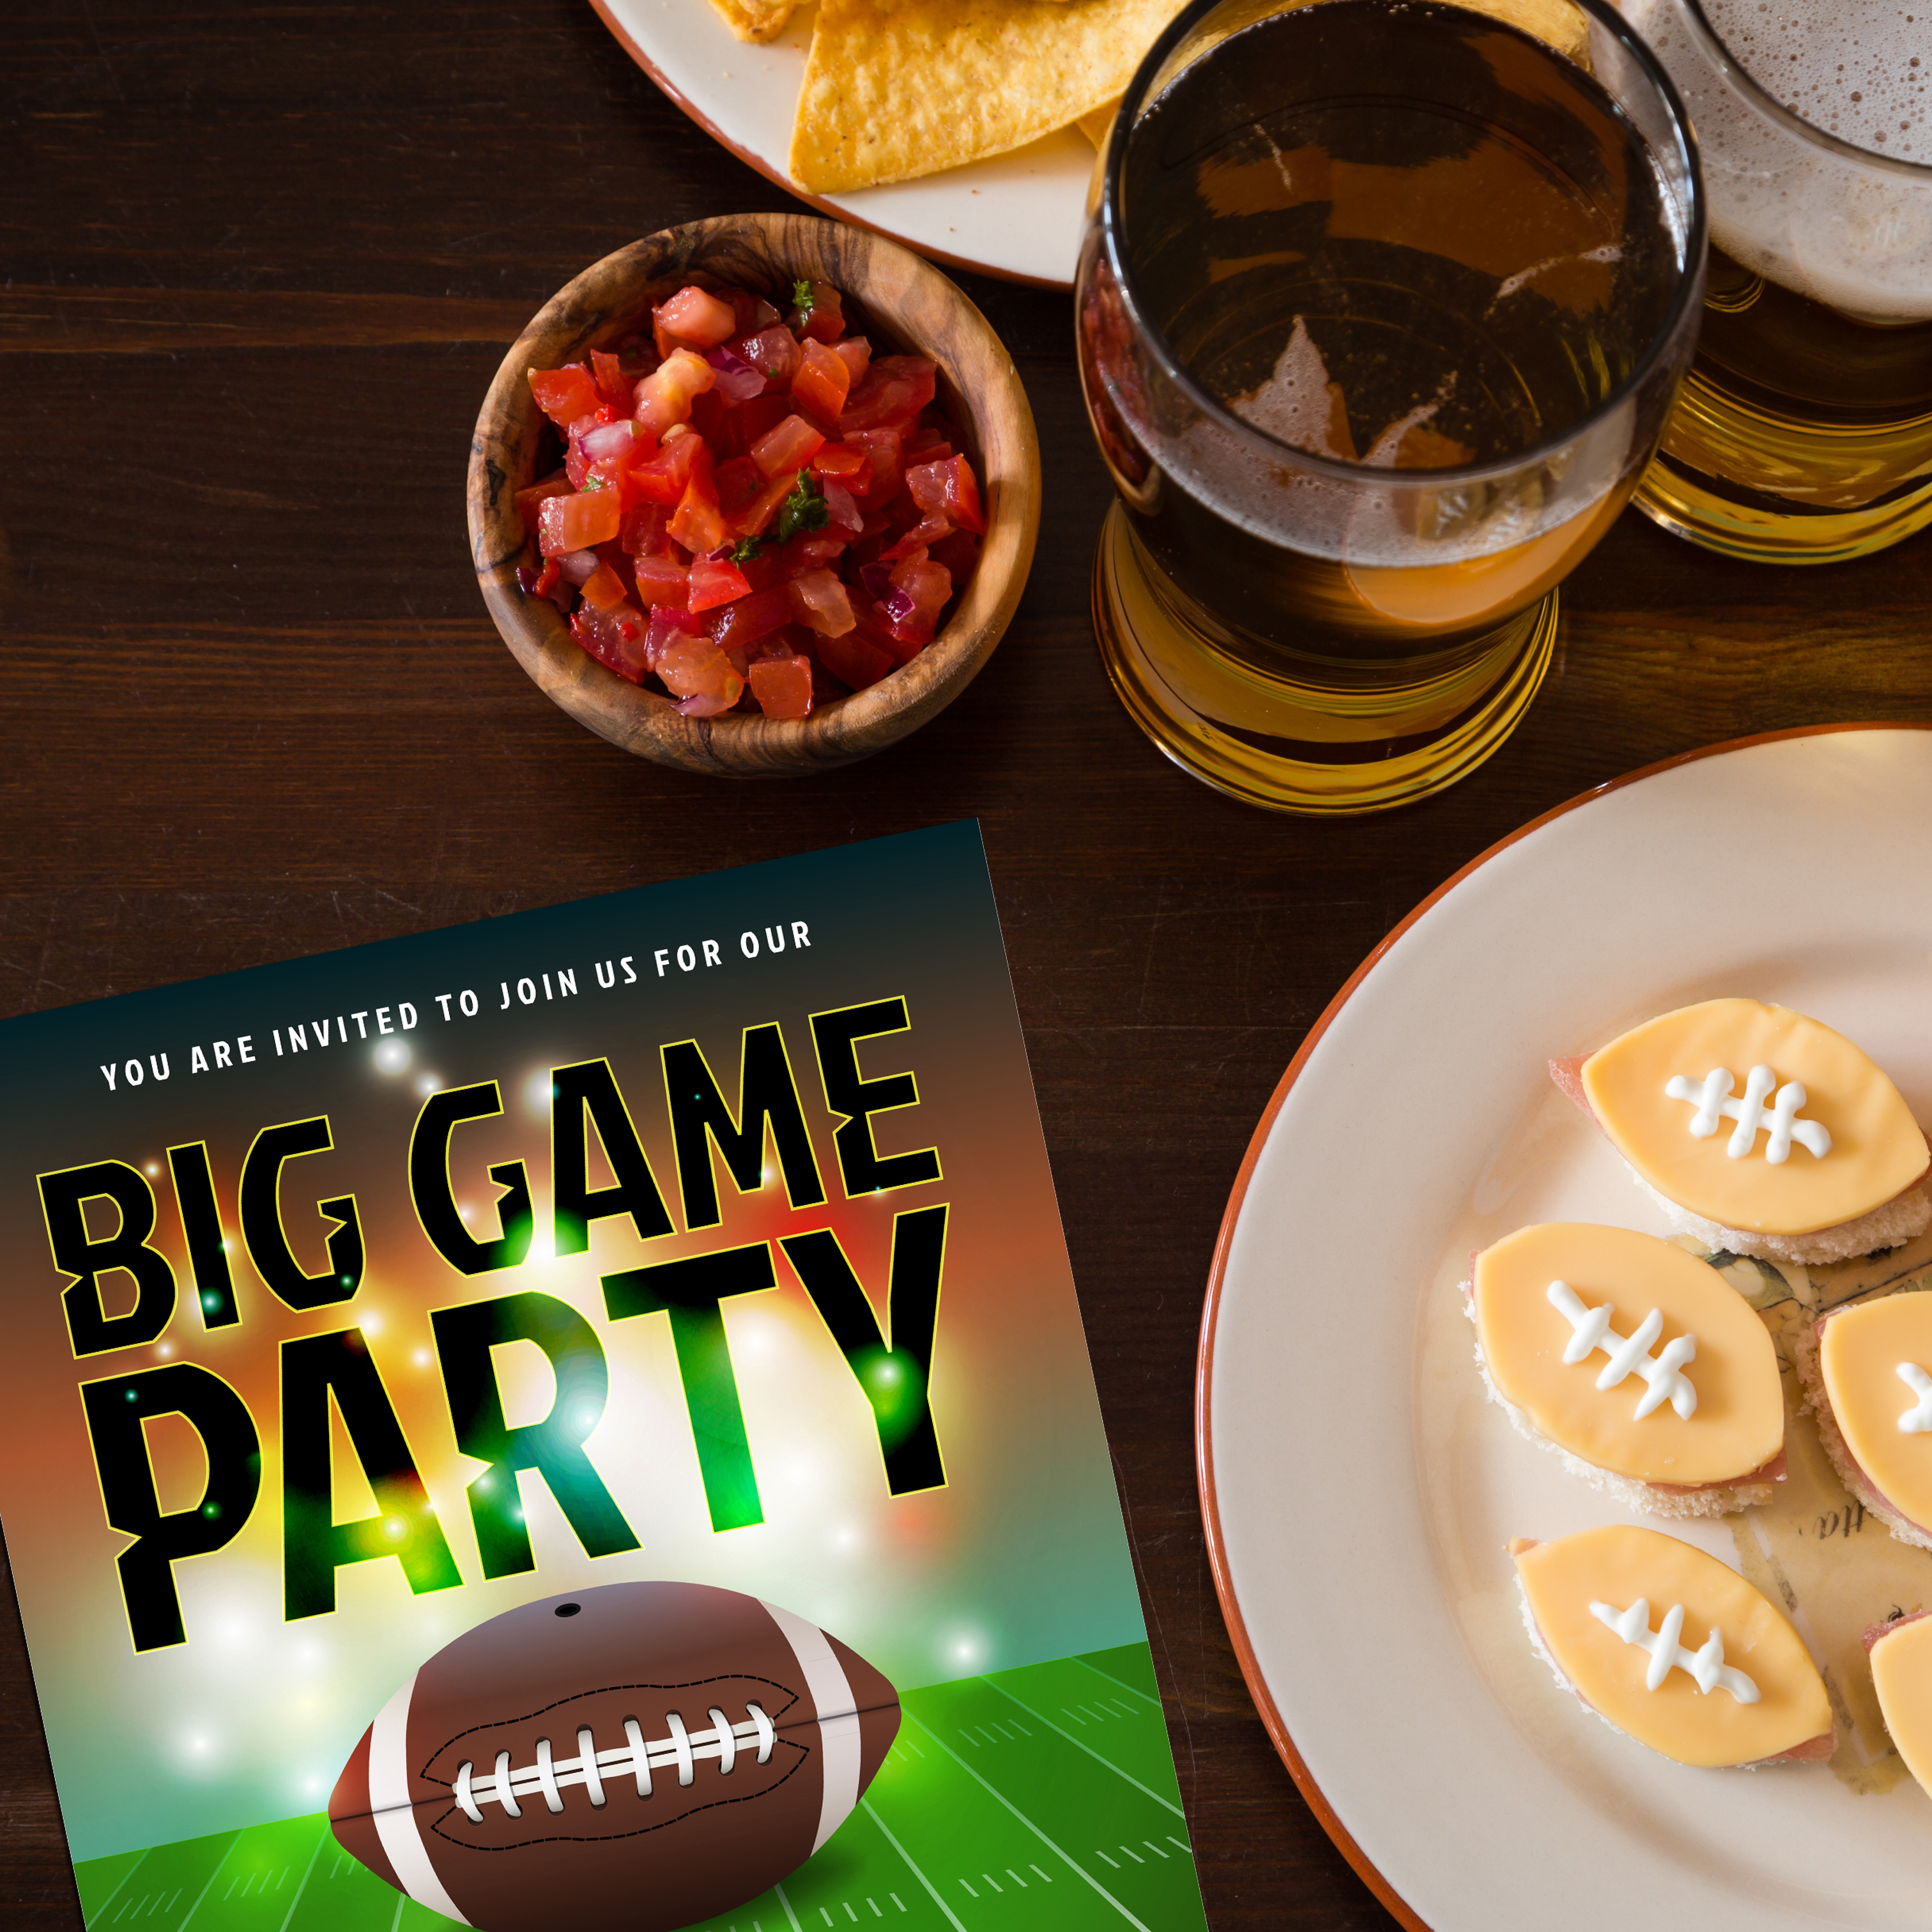 Printable Football Party Invitations For Adult, Kid & Family Parties